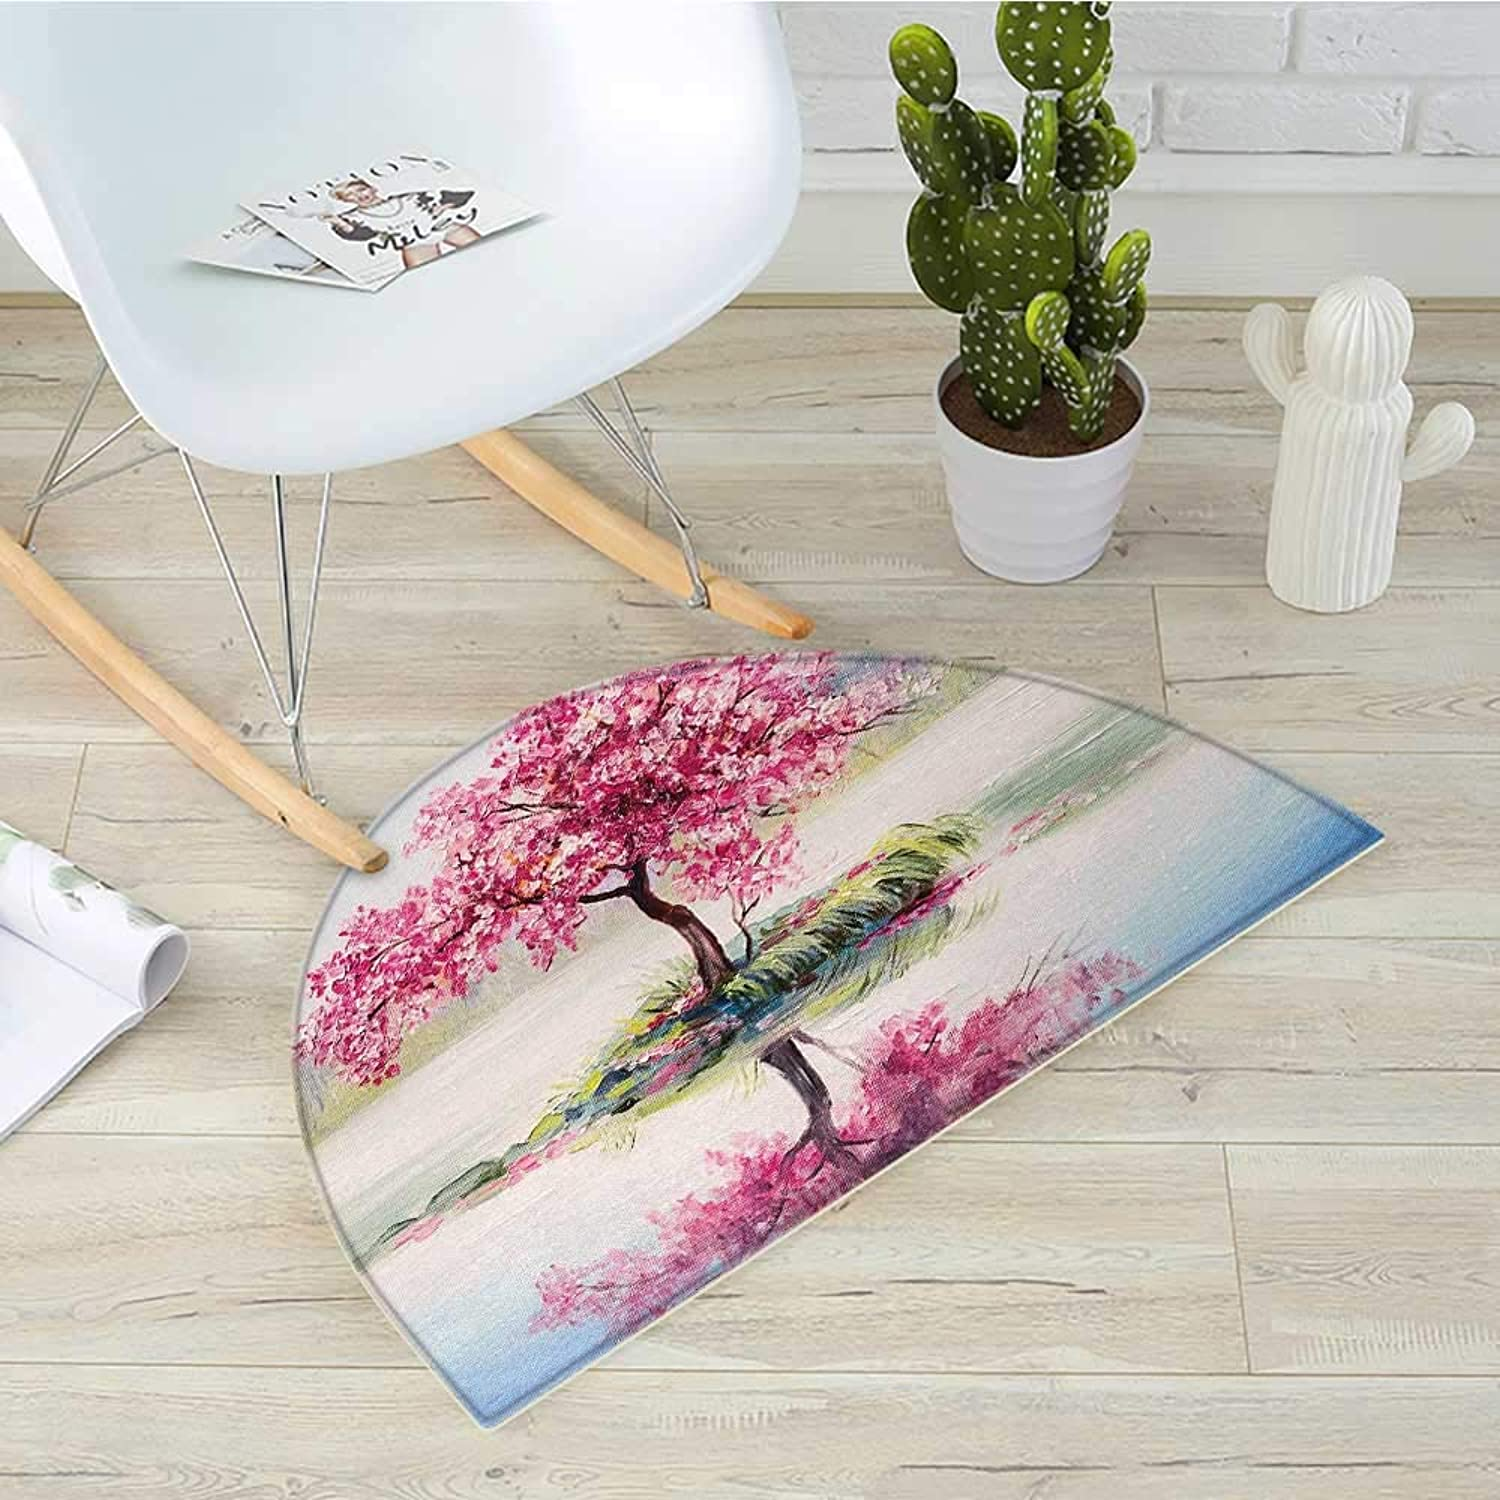 Country Semicircular CushionImage of Blooming Japanese Cherry Tree Sakura on The Lake Soft Romantic Culture Work Entry Door Mat H 43.3  xD 64.9  Multi